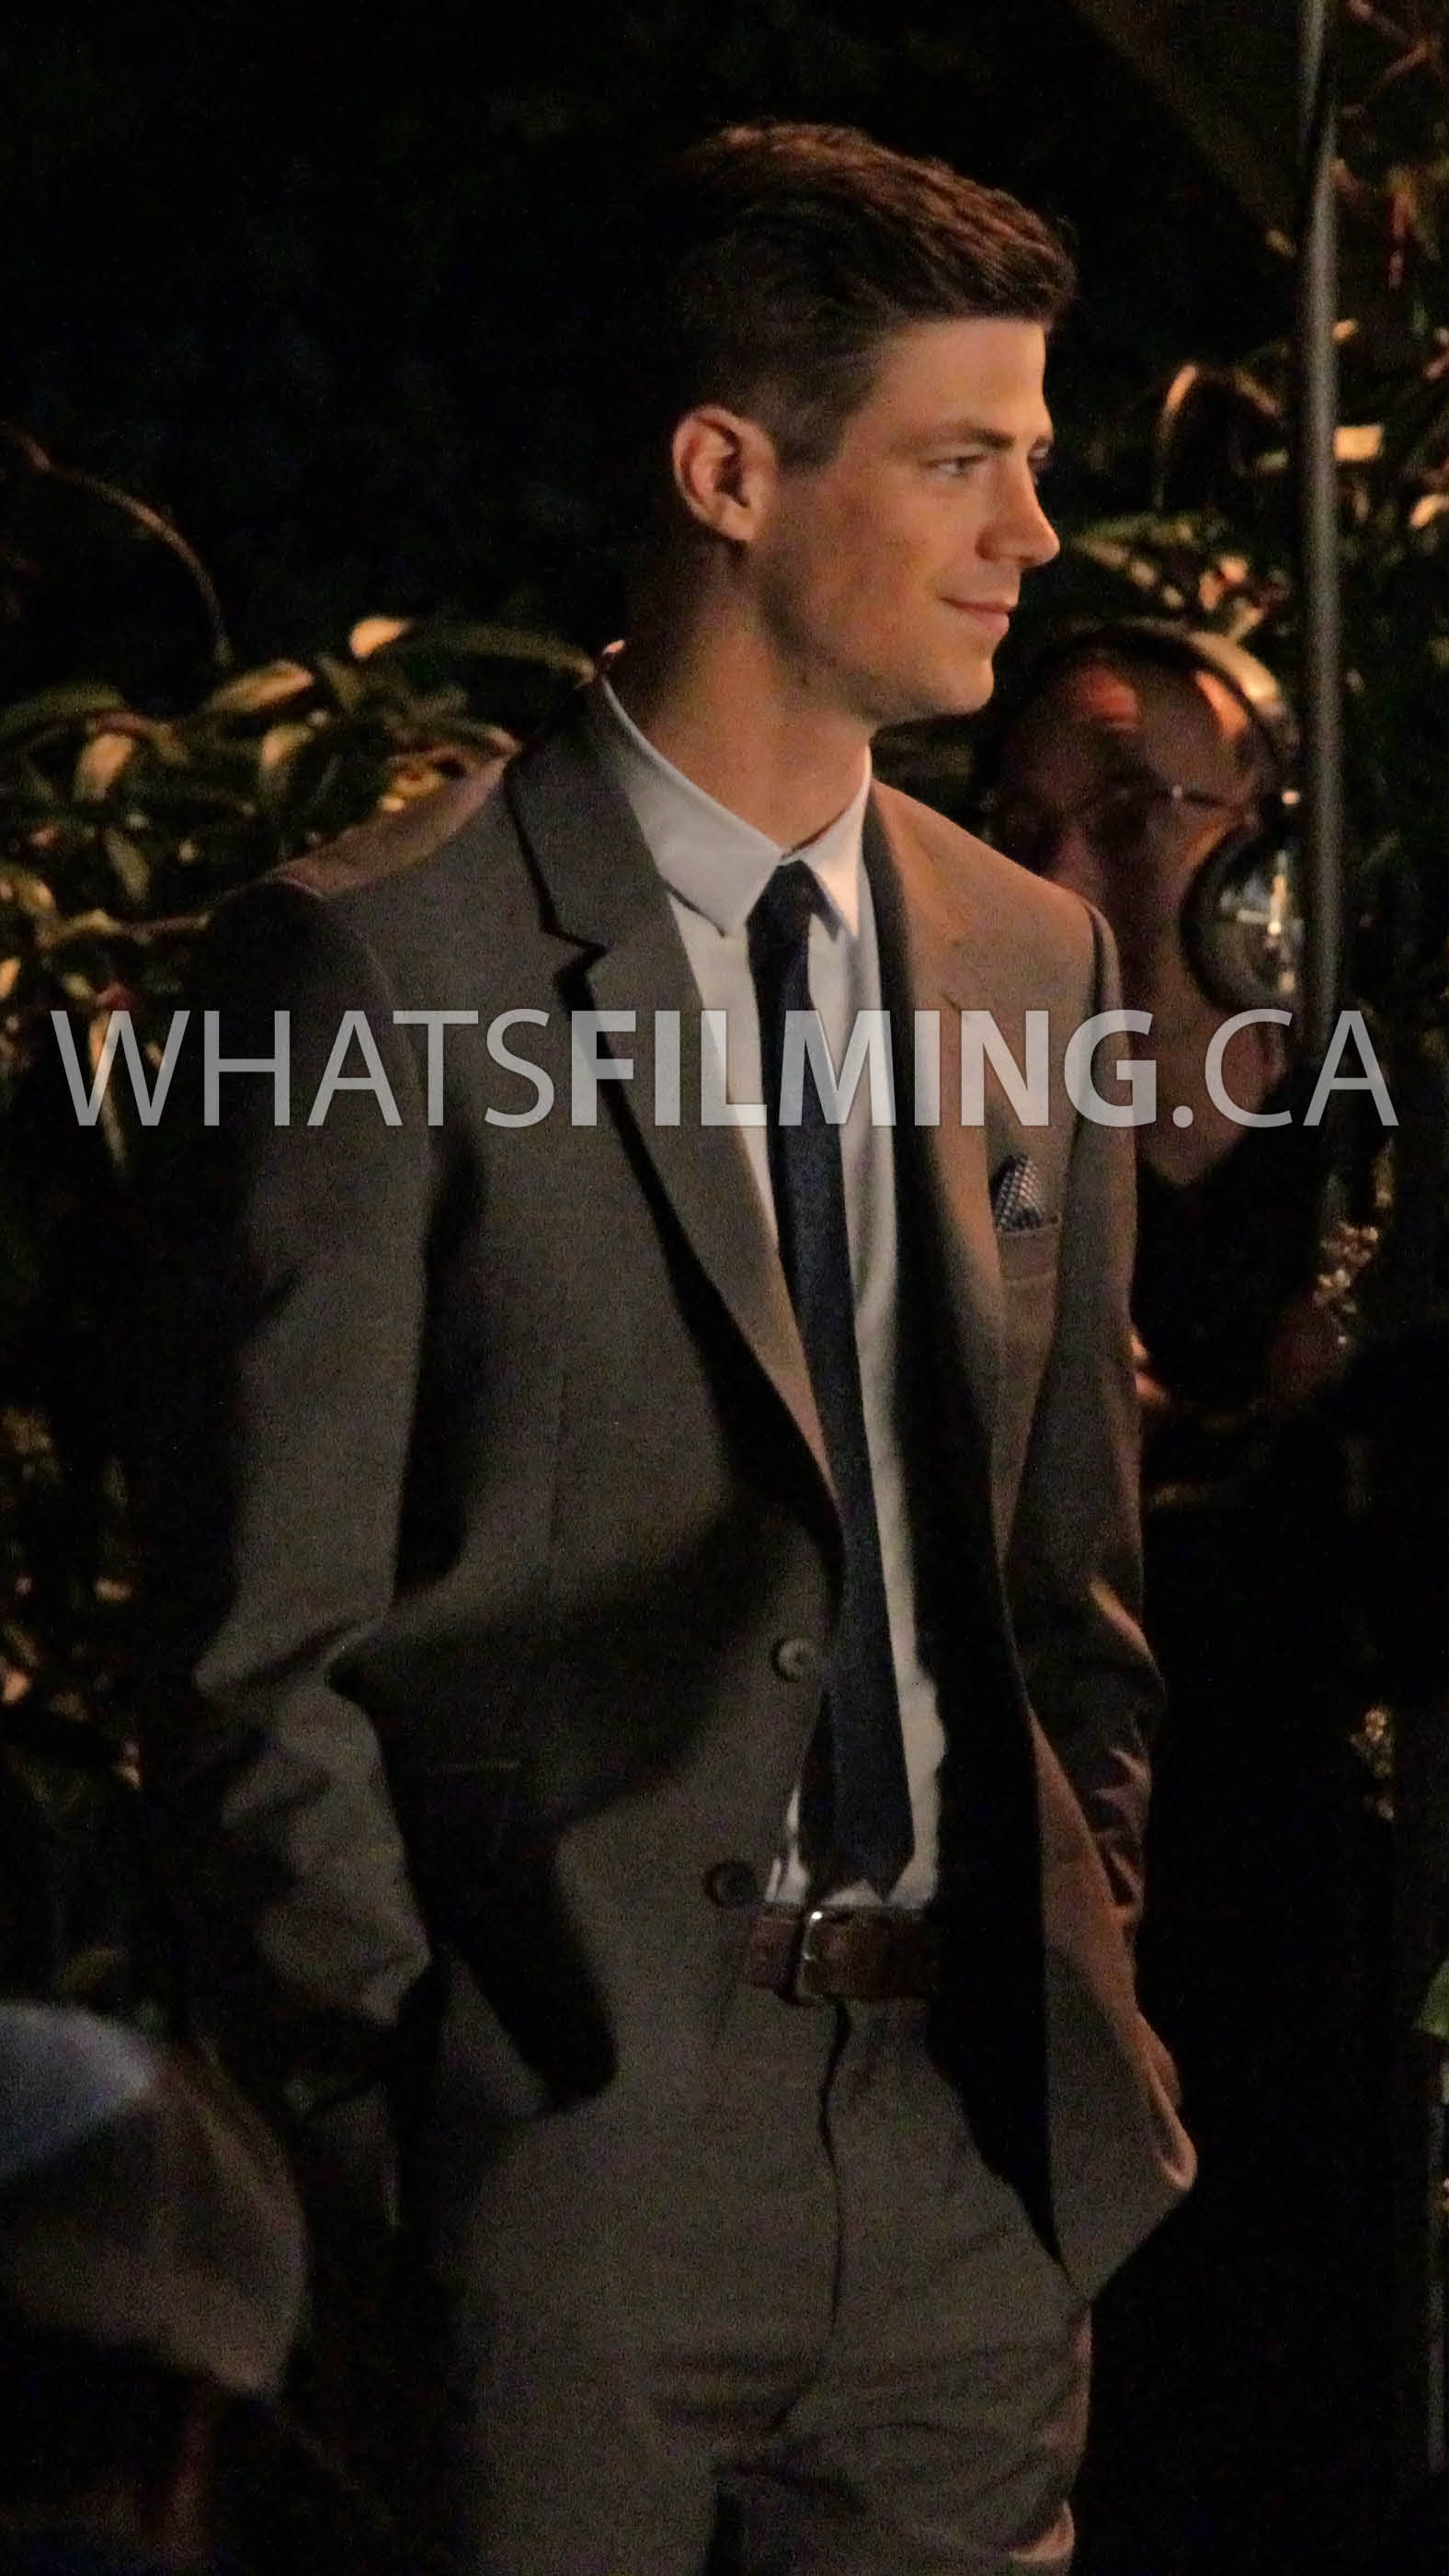 Grant Gustin in the Flash suit after filming a scene for The Flash season 3 episode 3